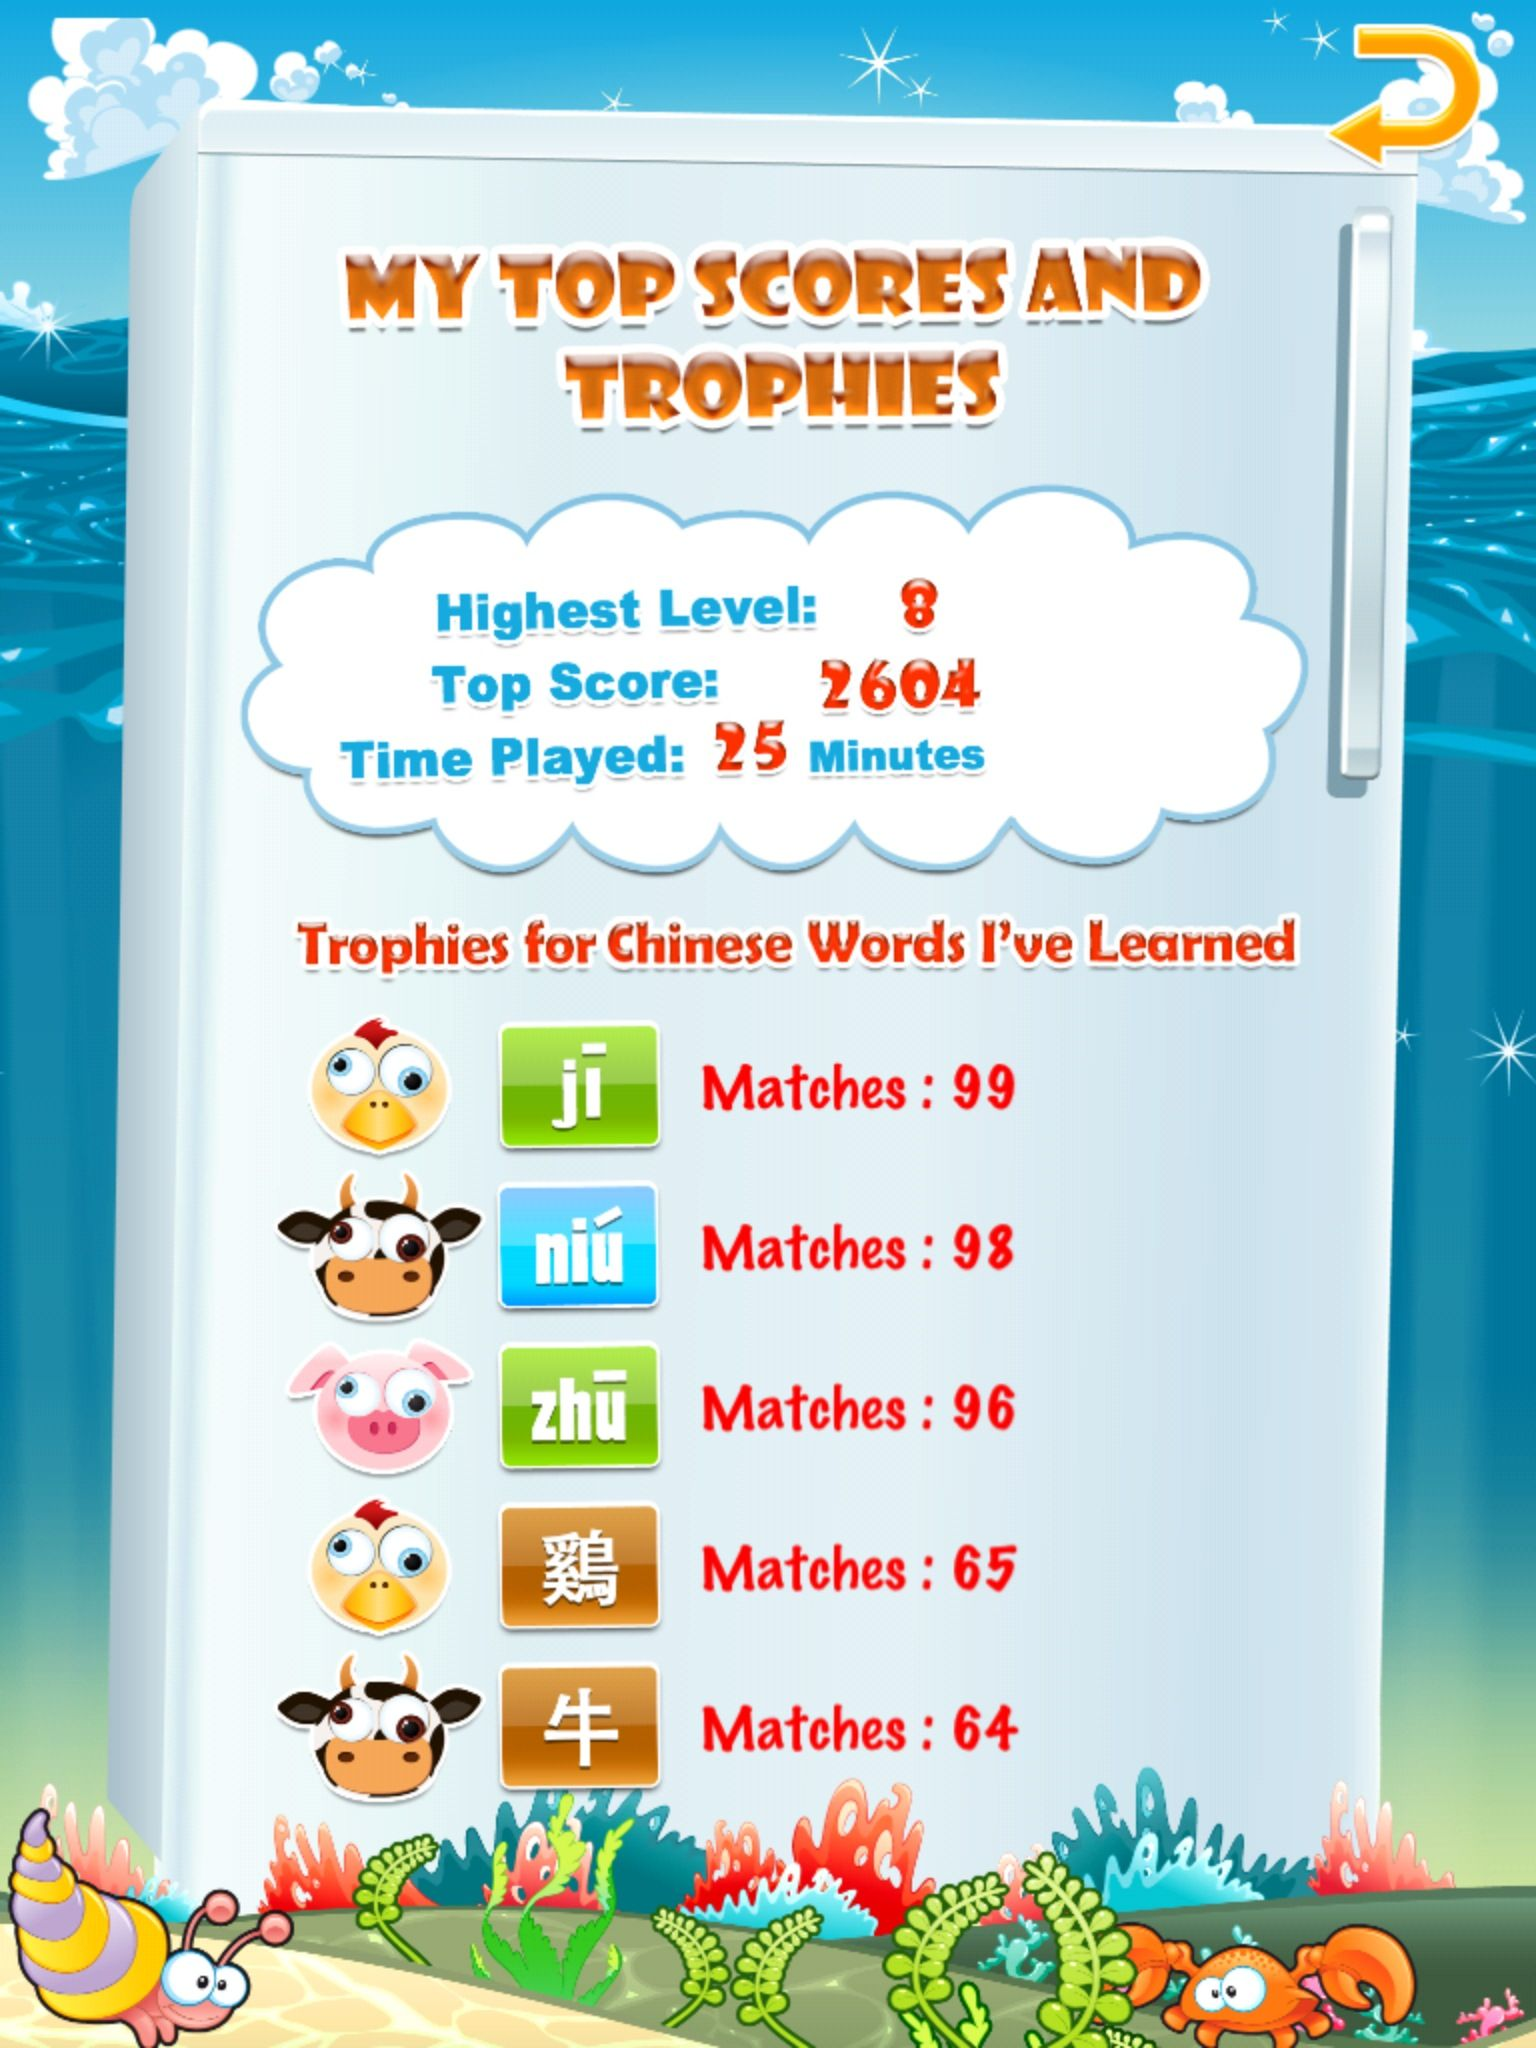 Chinese Fridge Game App High Score Page Allows Tracking of